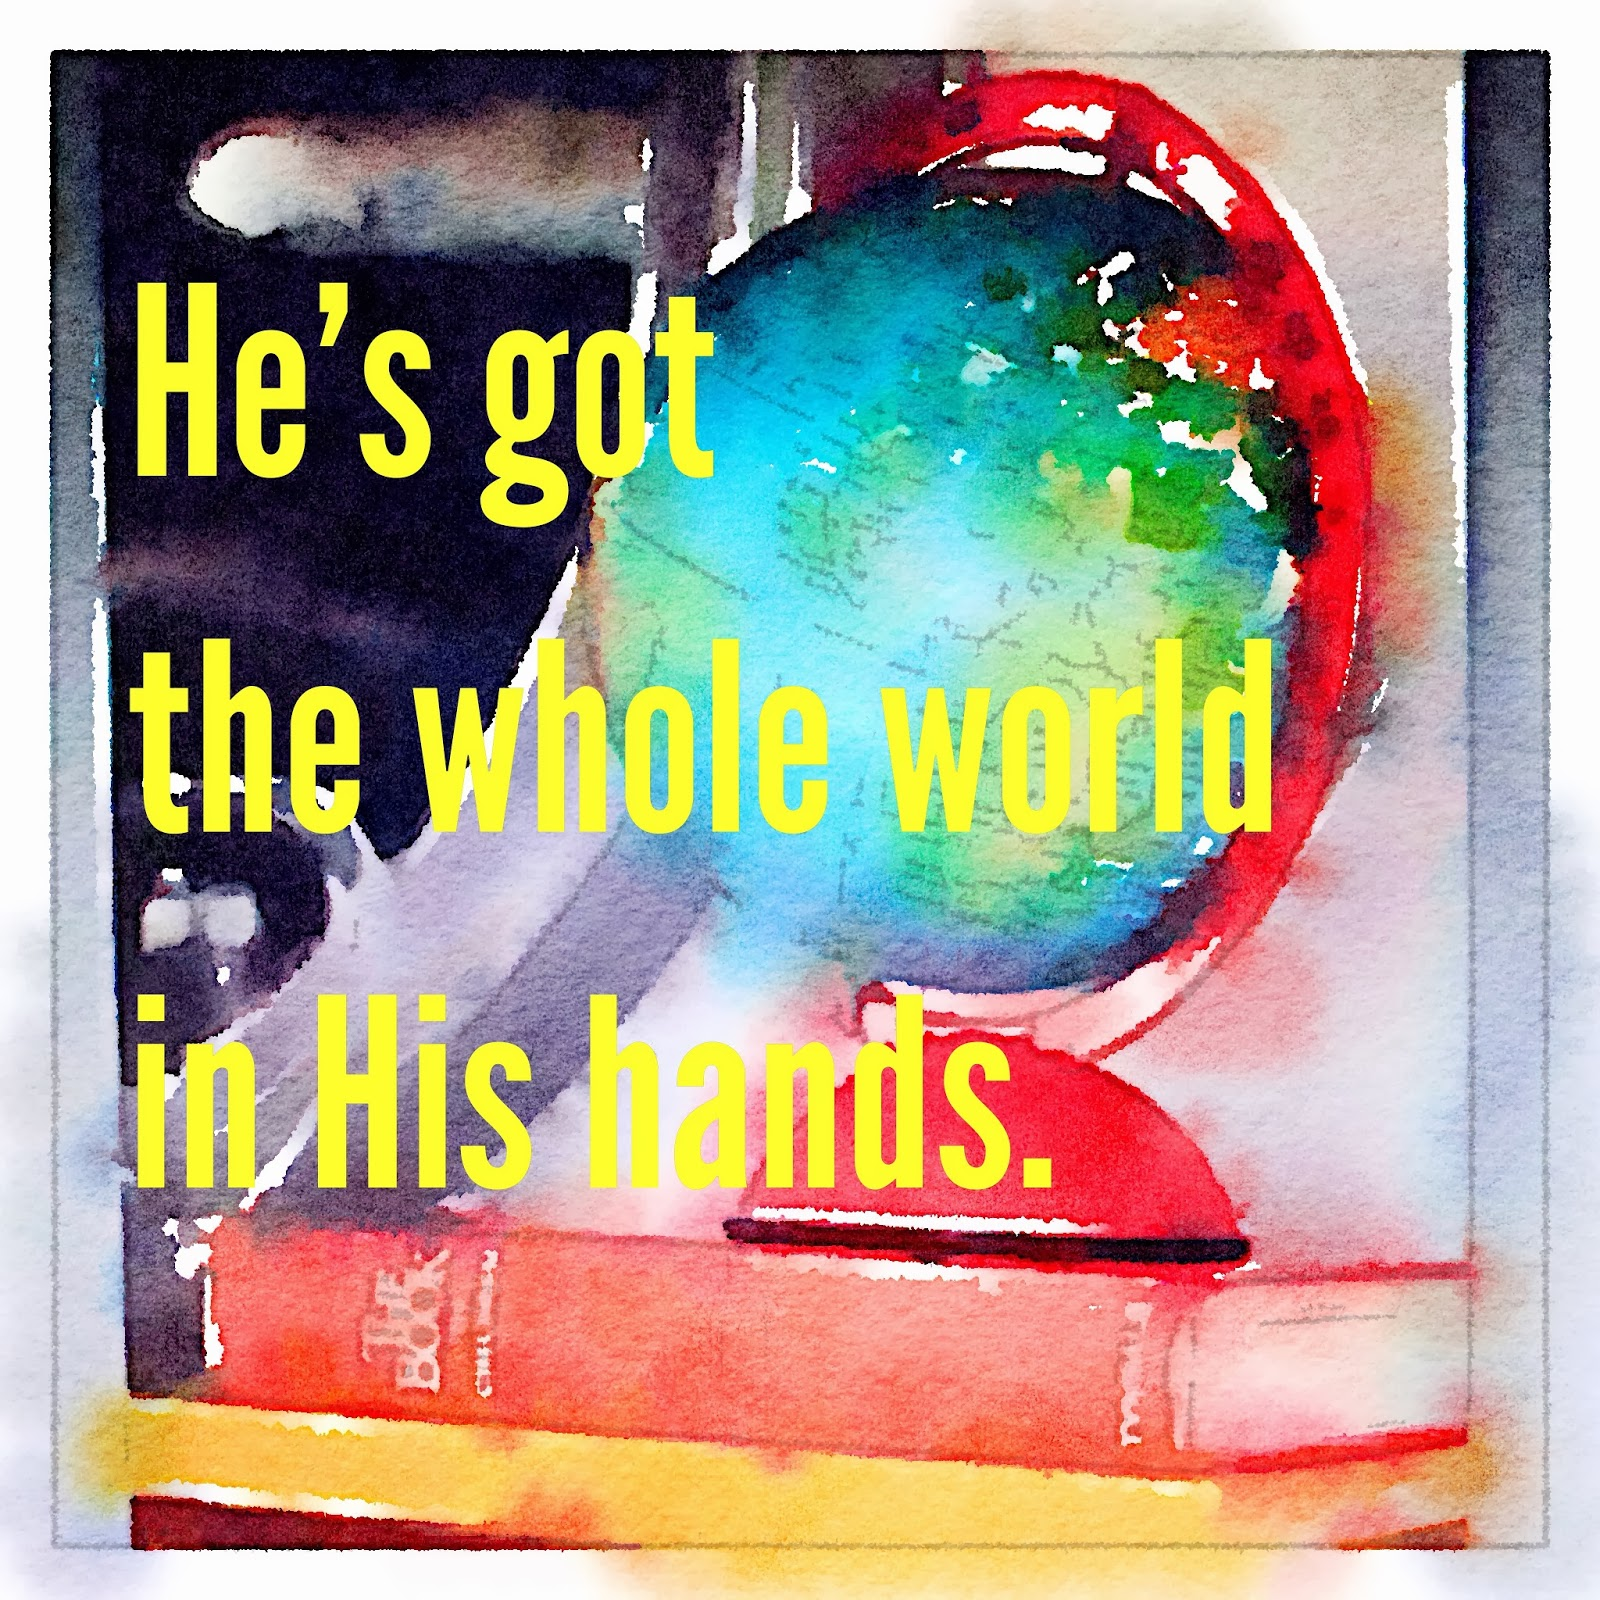 He's got the whole world in His hands.